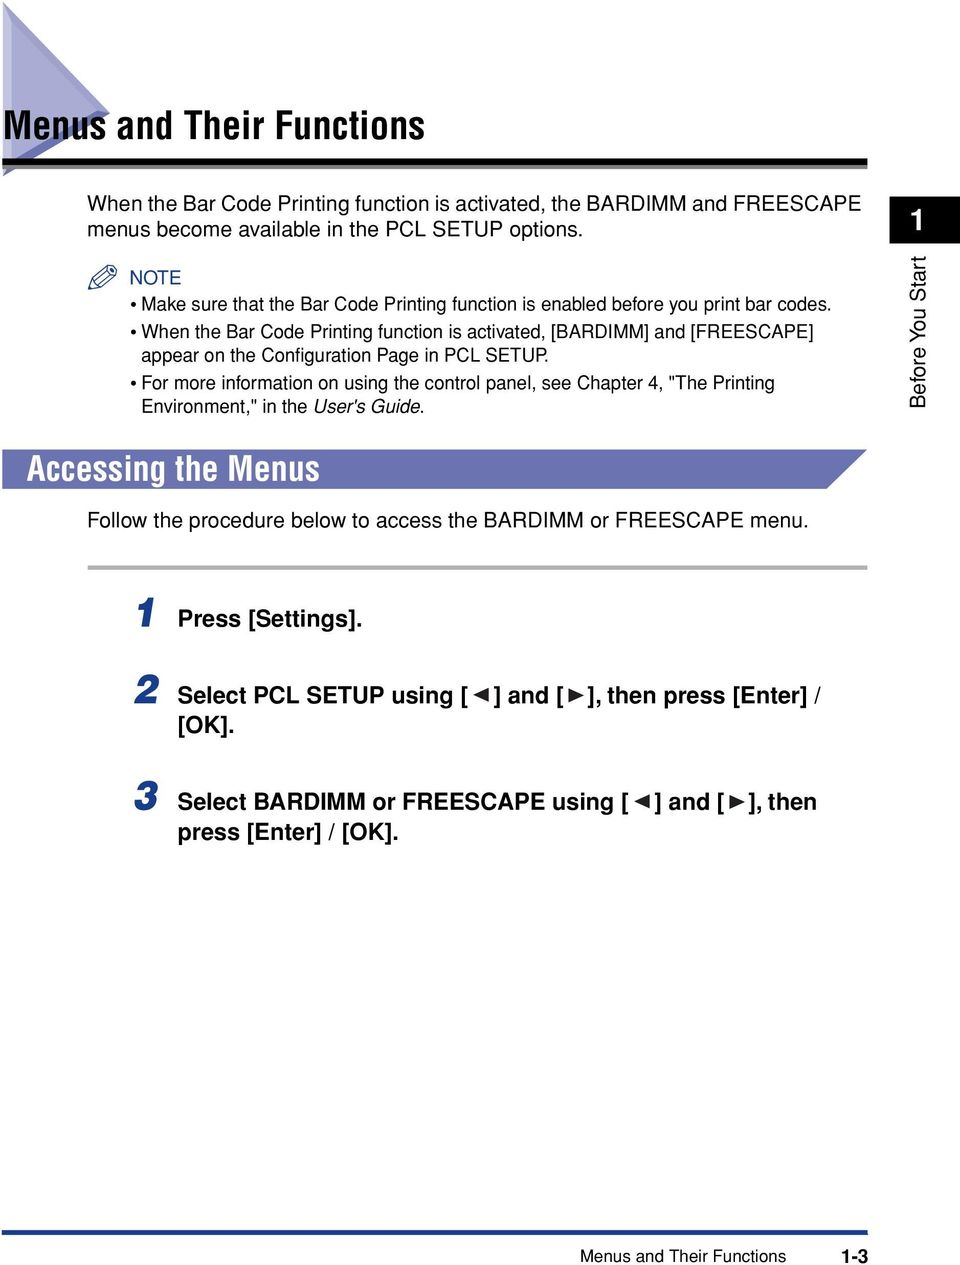 When the Bar Code Printing function is activated, [BARDIMM] and [FREESCAPE] appear on the Configuration Page in PCL SETUP.